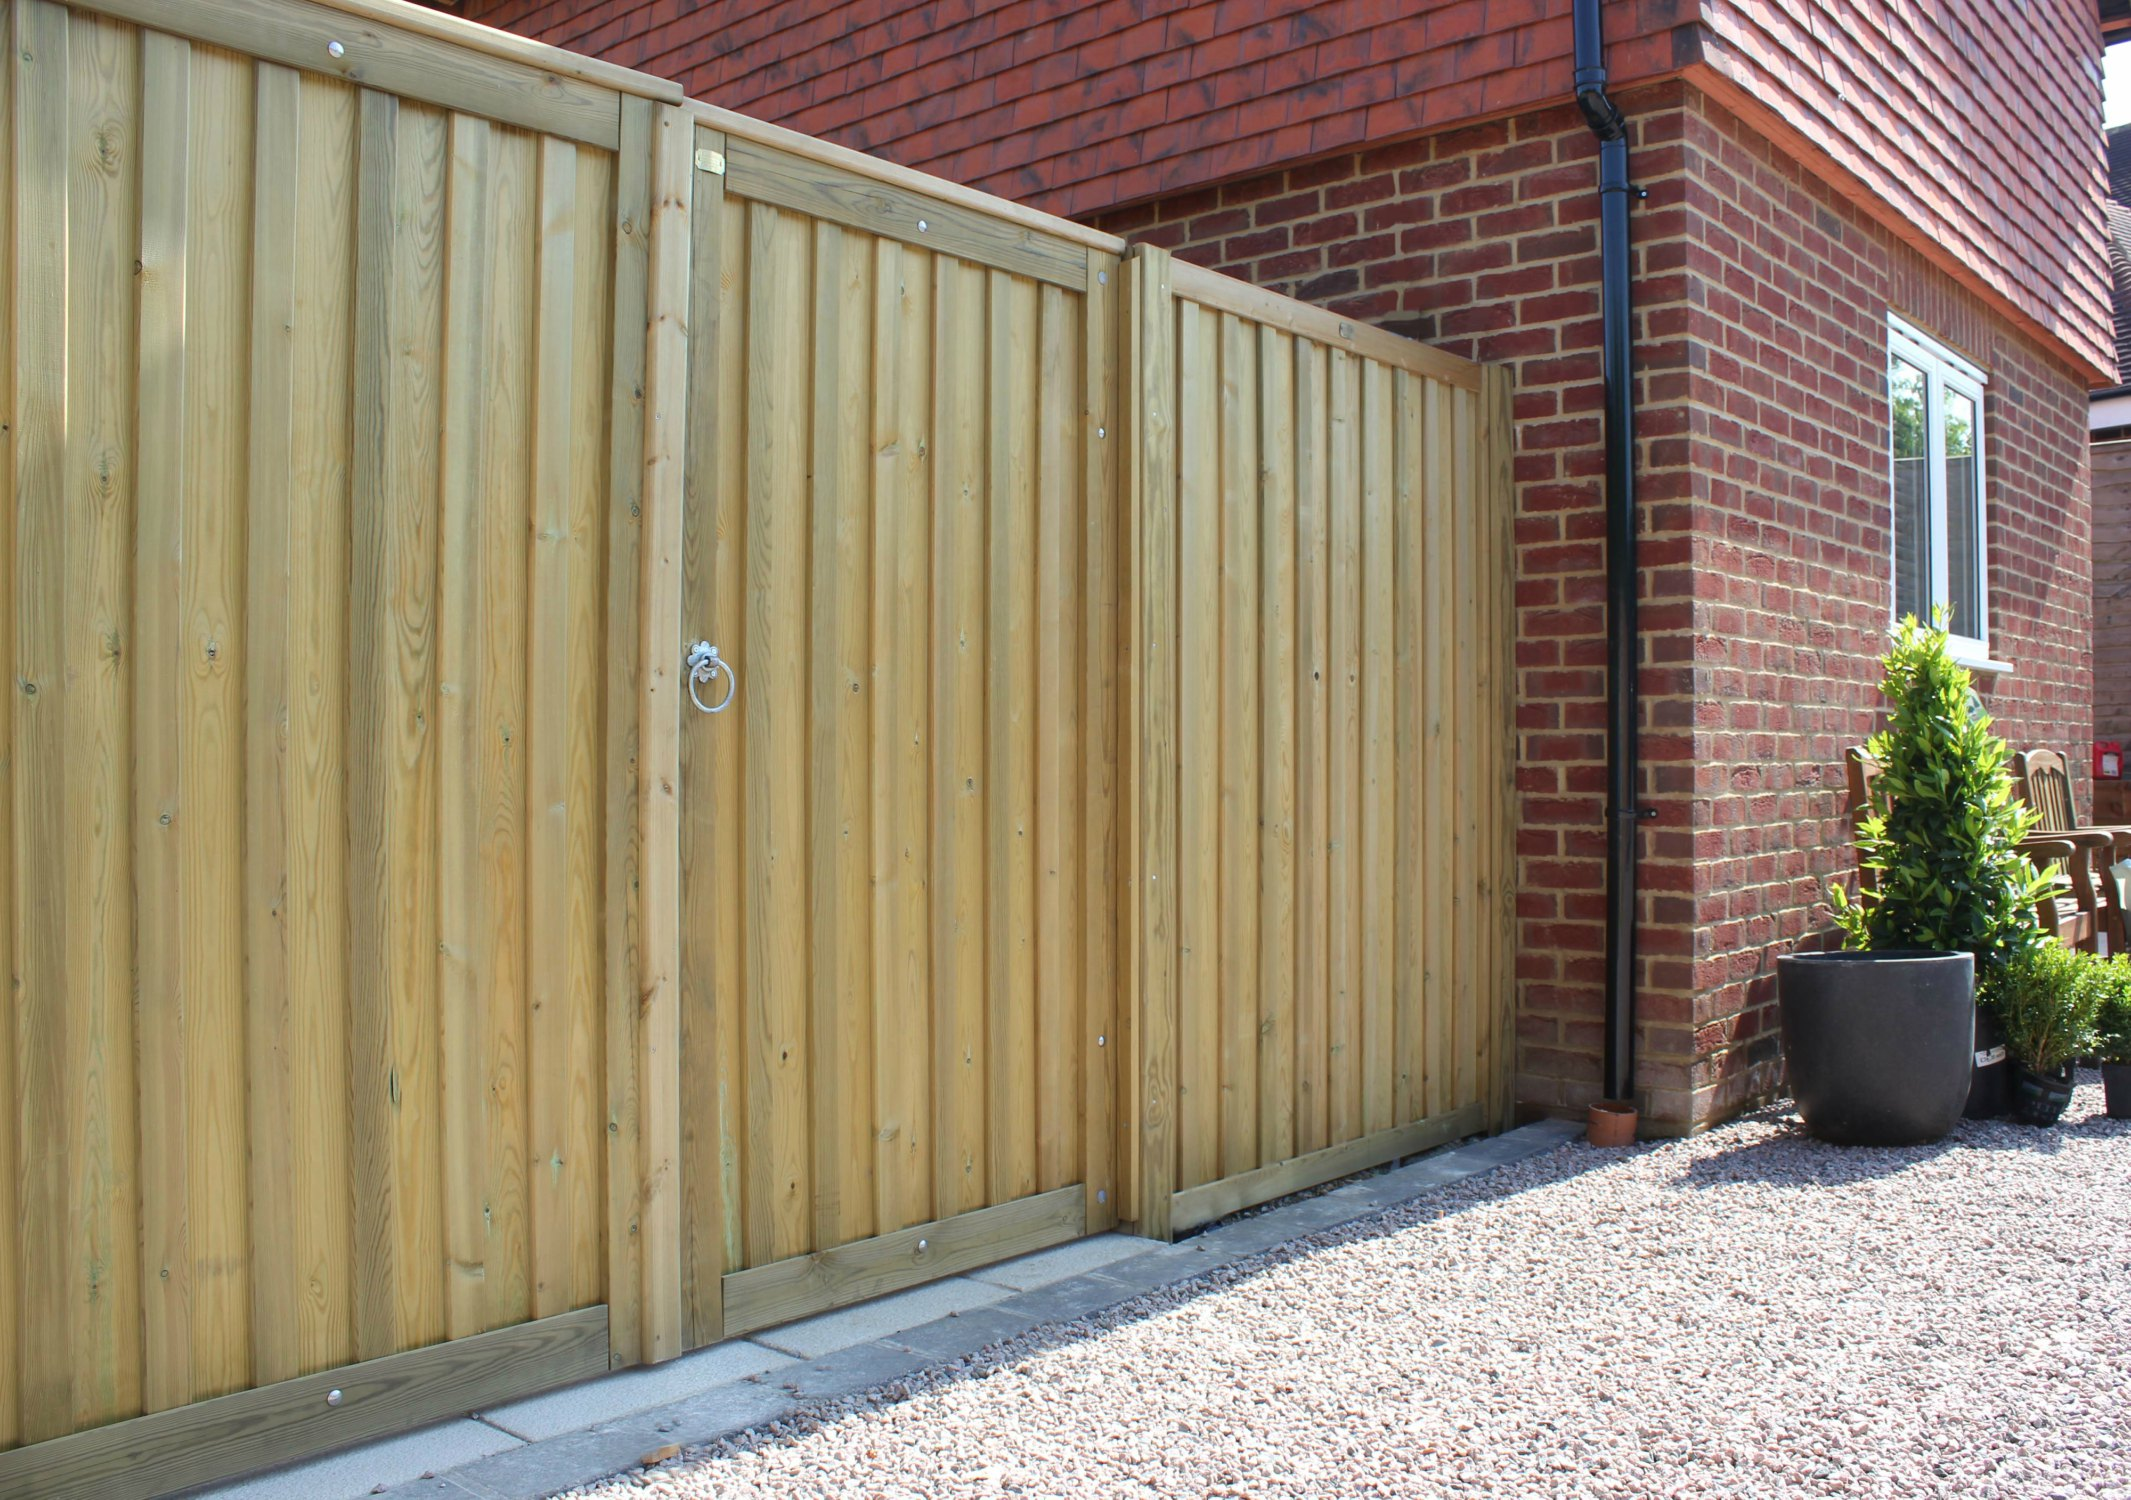 Images Of Garden Fences And Gates With Panels